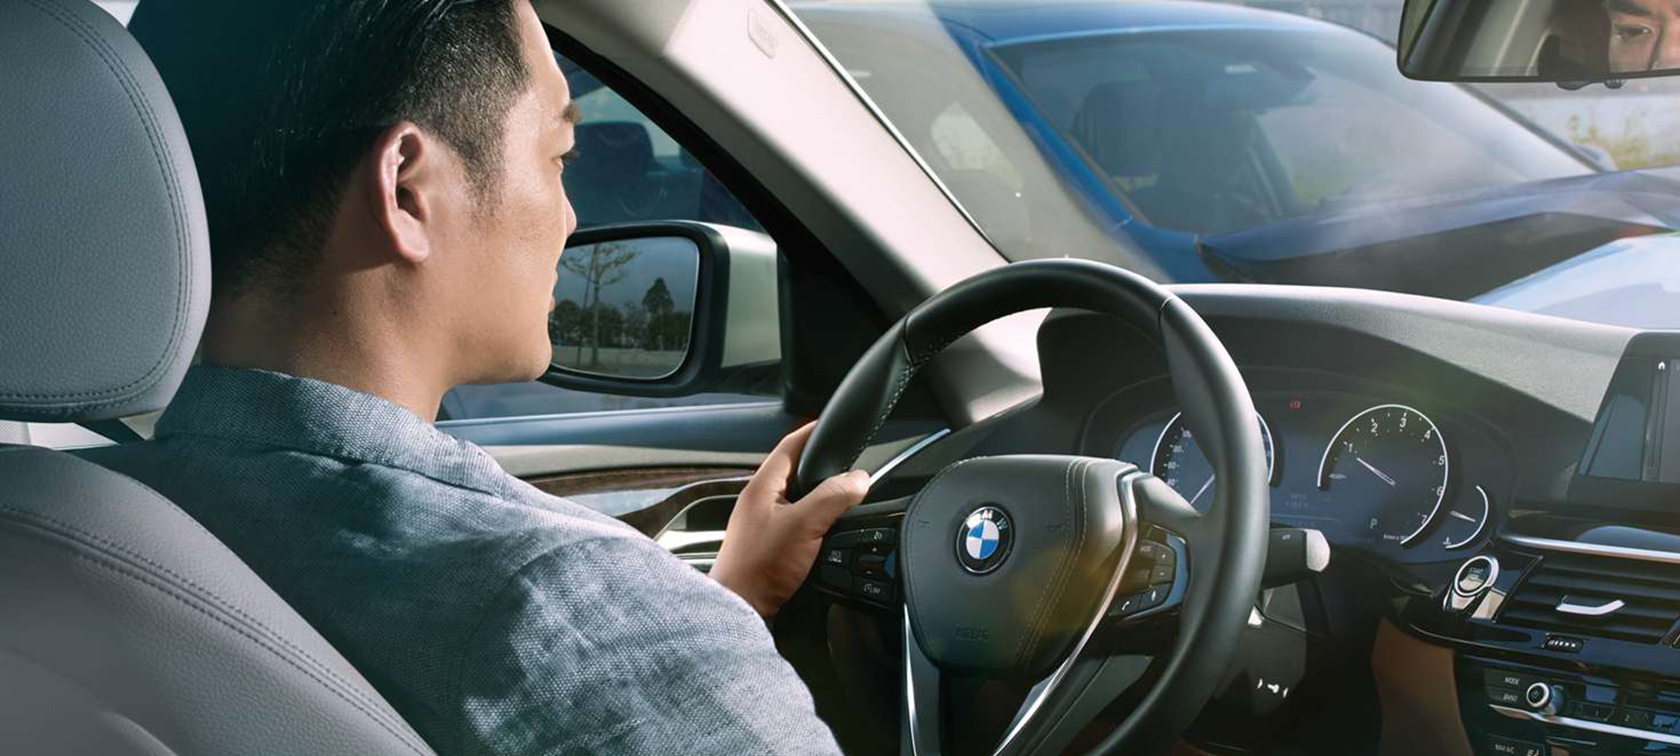 The all-new bmw advanced car eye 2.0. safety in full HD